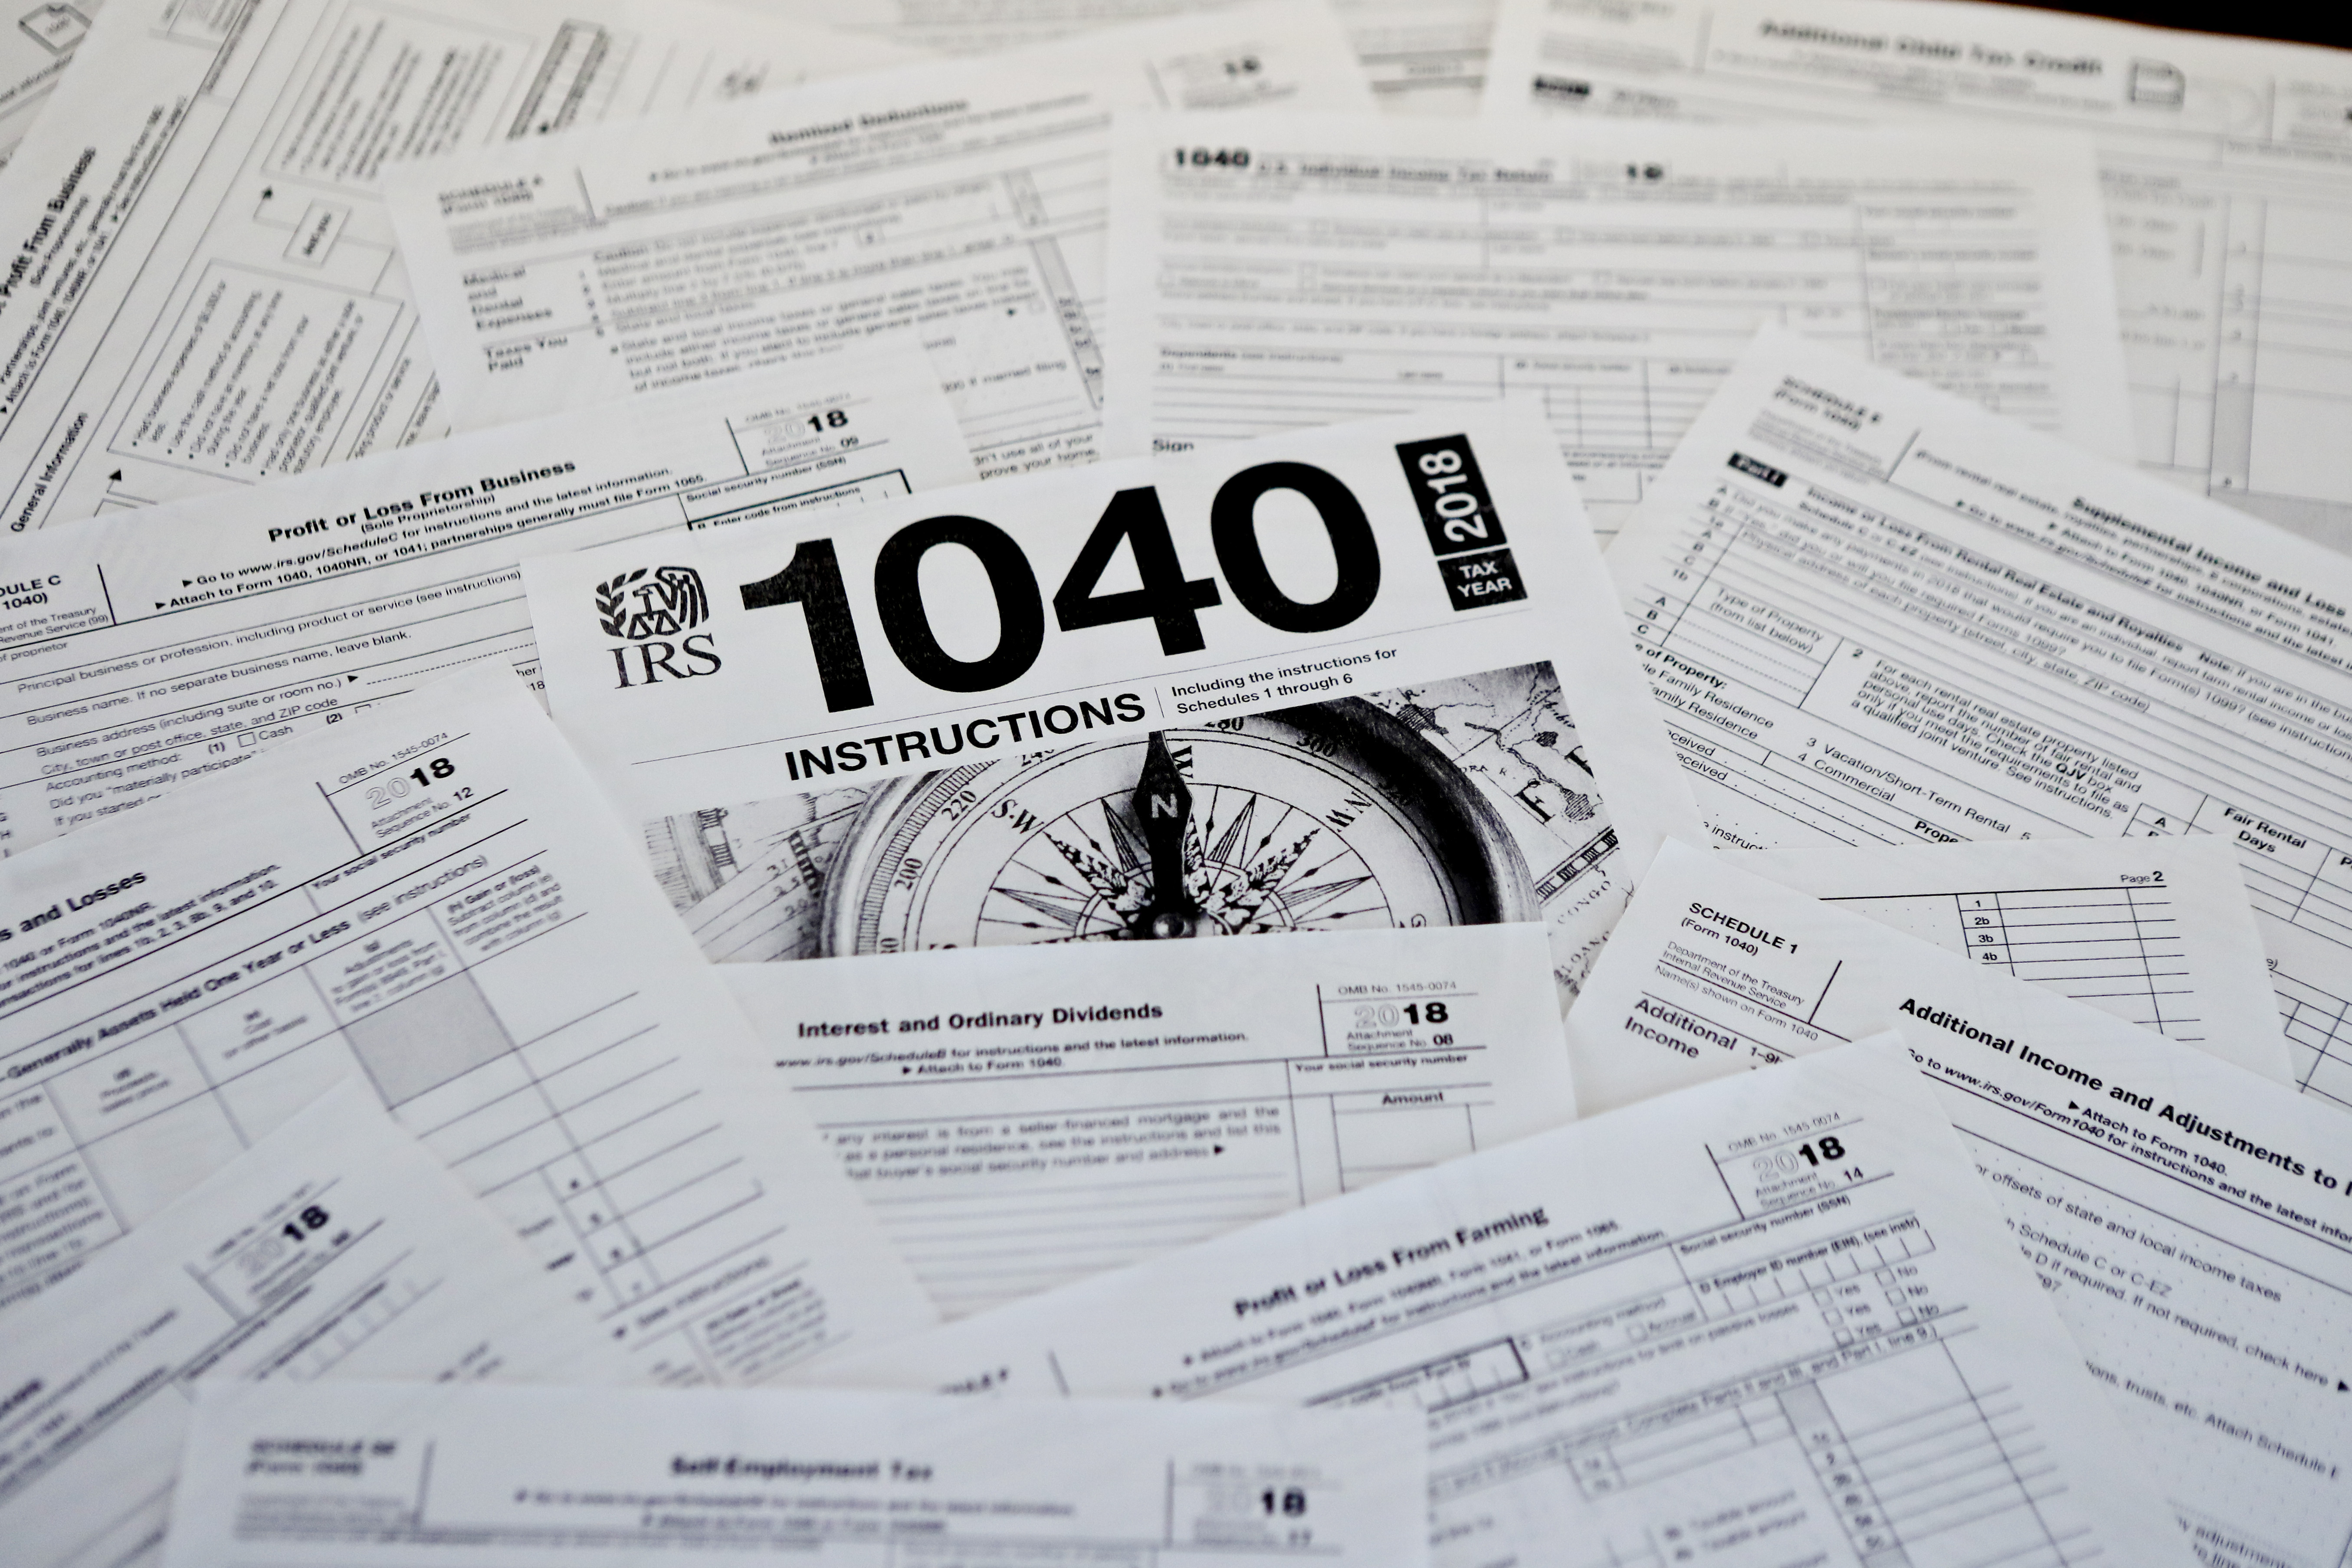 Tax Returns Waste Everyone's Time – but There's an Easy Solution the Tax Preparation Industry and Some Lawmakers Don't Like